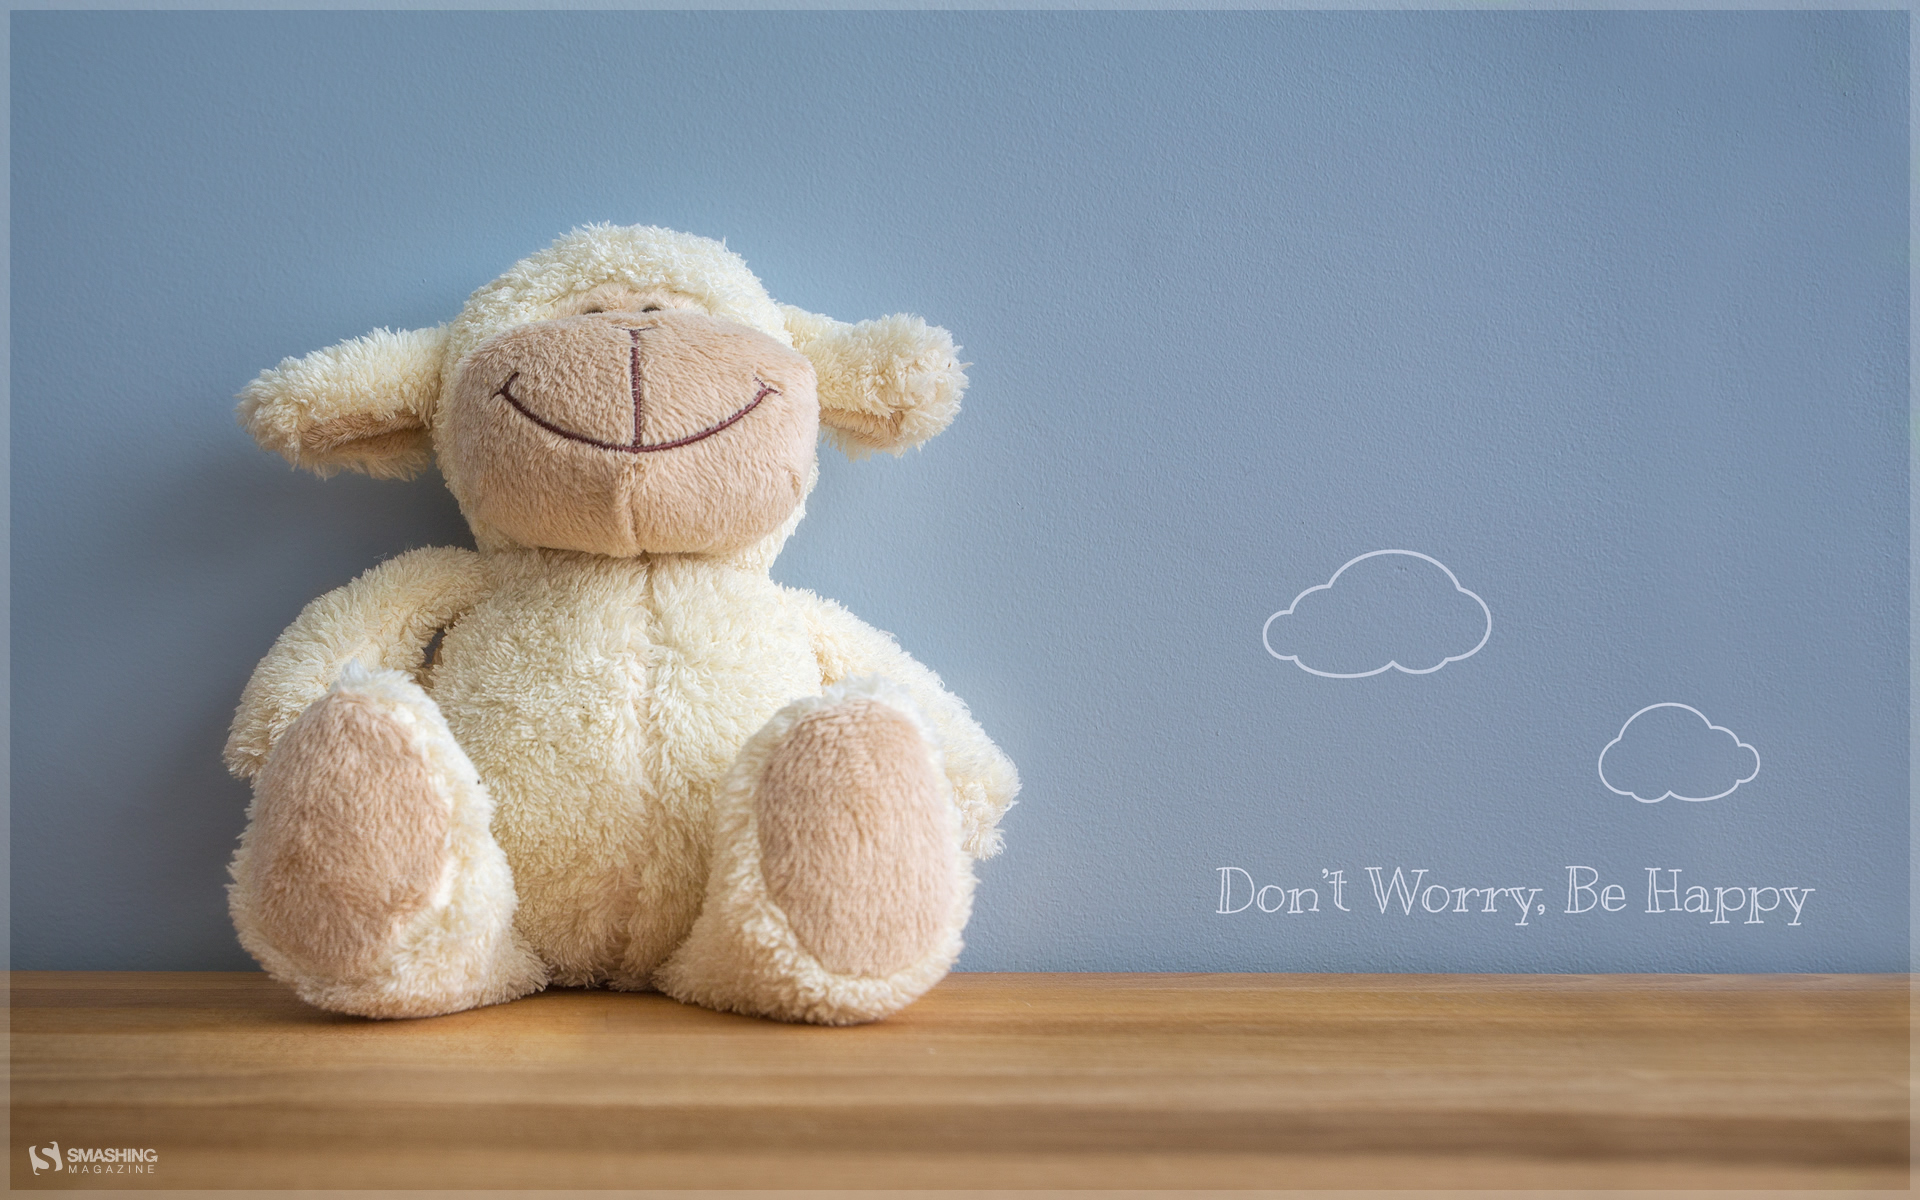 be_happy-widescreen_wallpapers